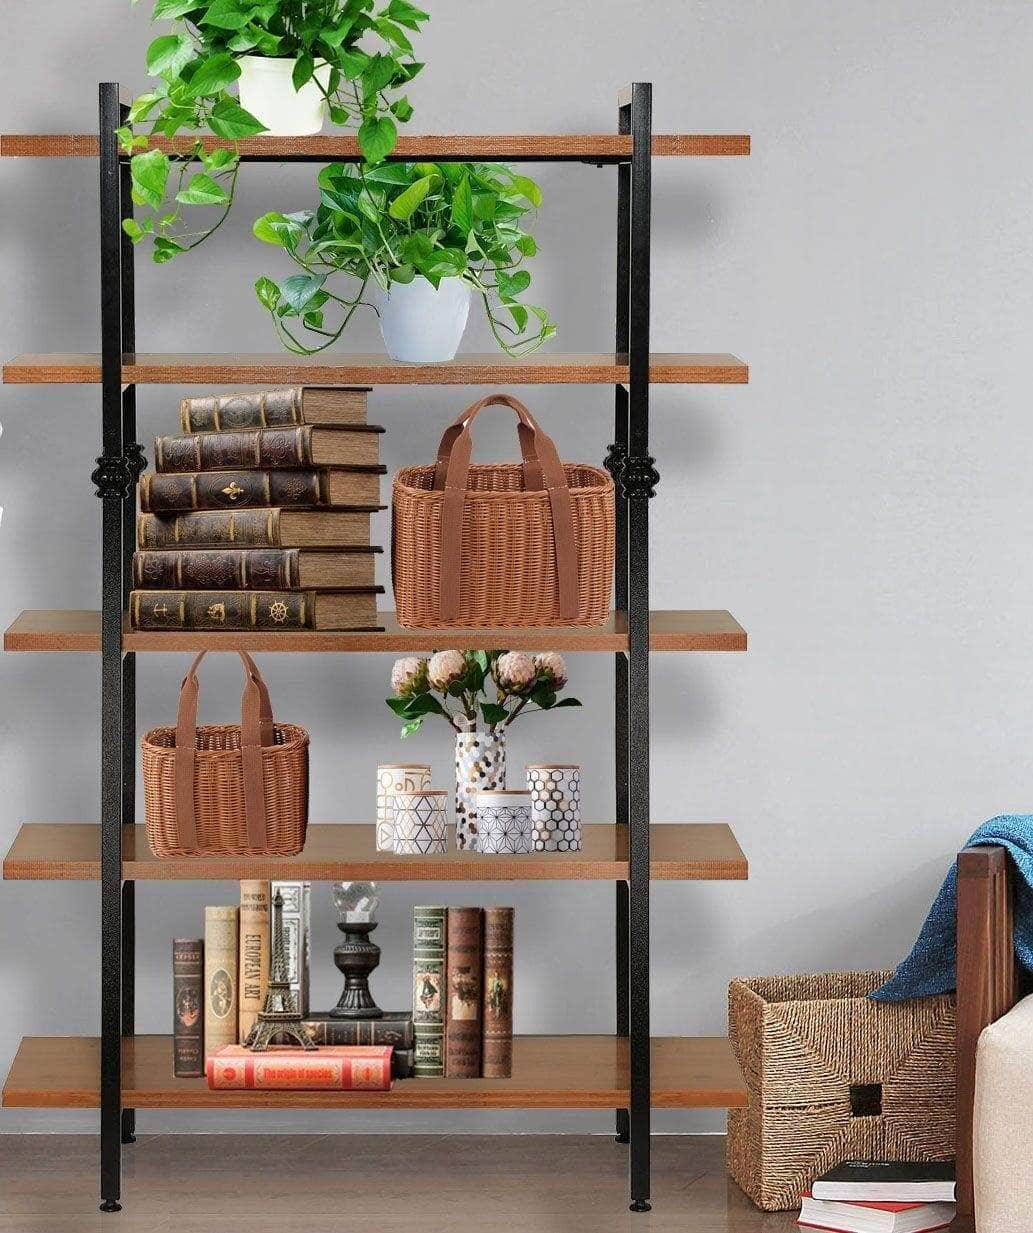 Try sprawl 5 tier vintage bookshelf free standing multi purpose open wooden book storage shelves ladder shelf closet organizer